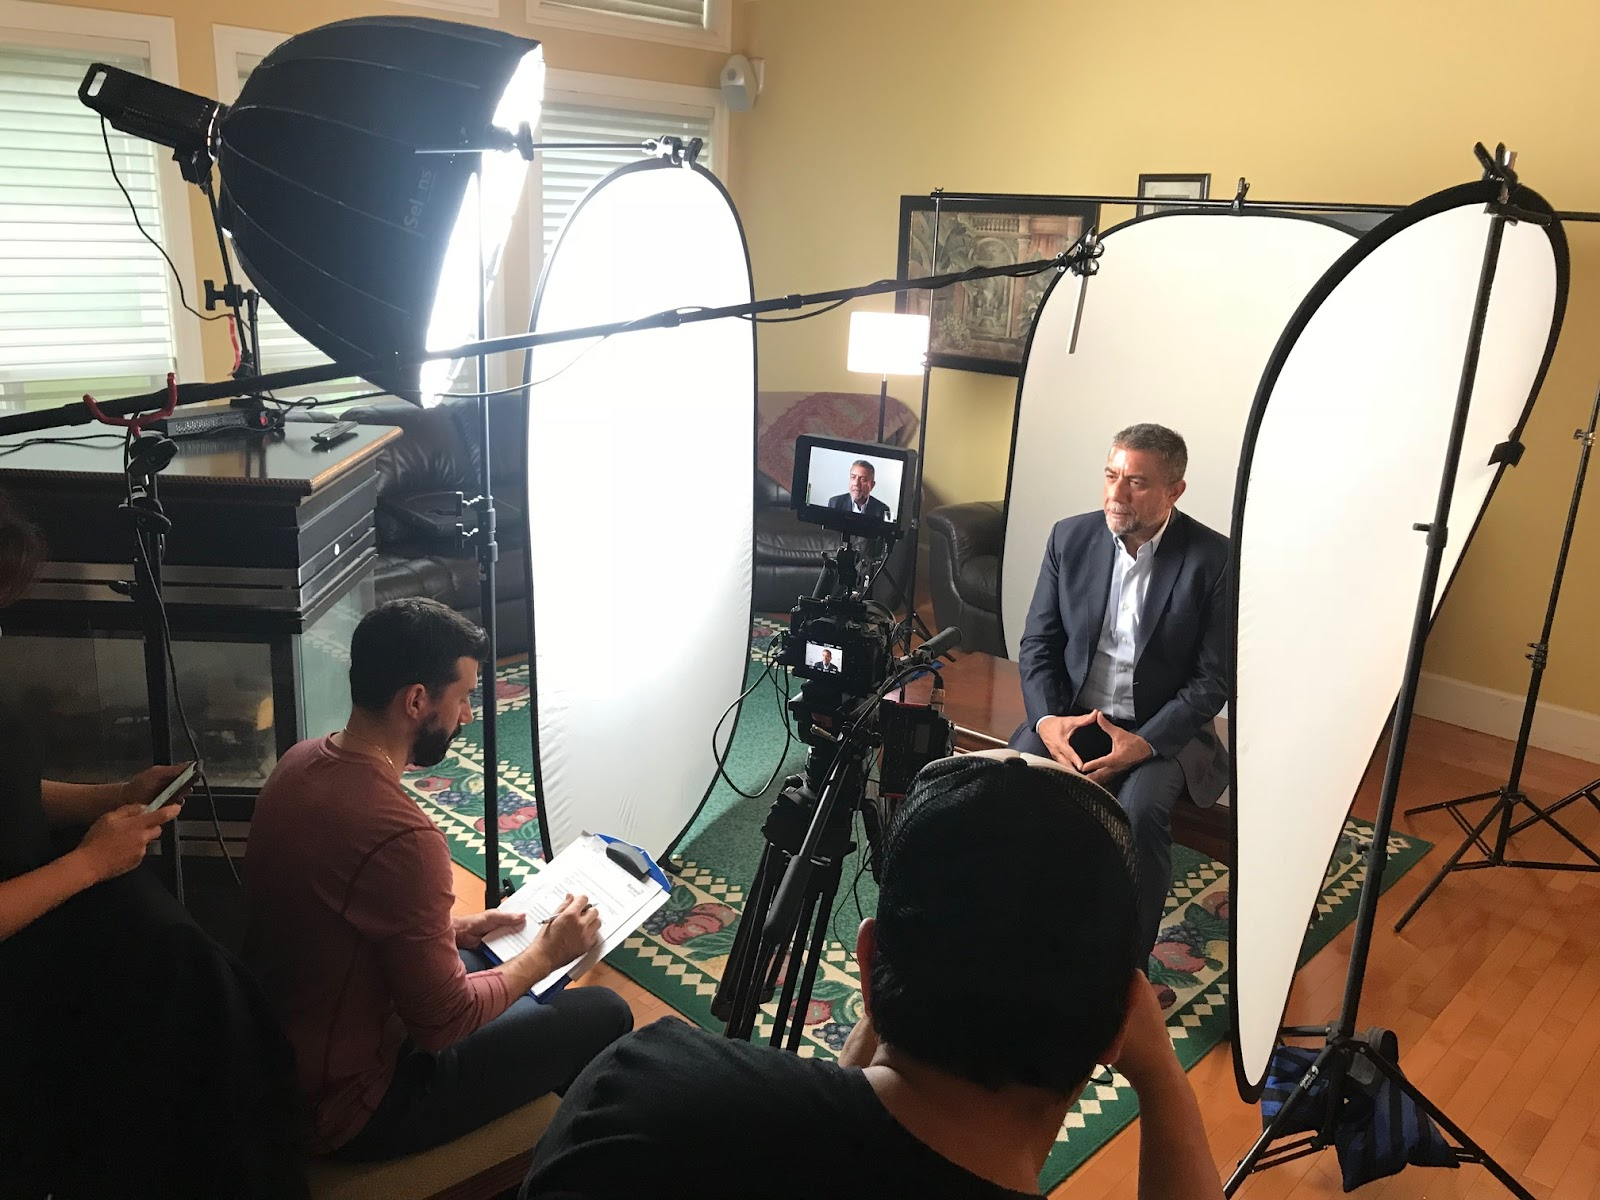 Behind the scenes of making the Sukh Dhaliwal campaign video.